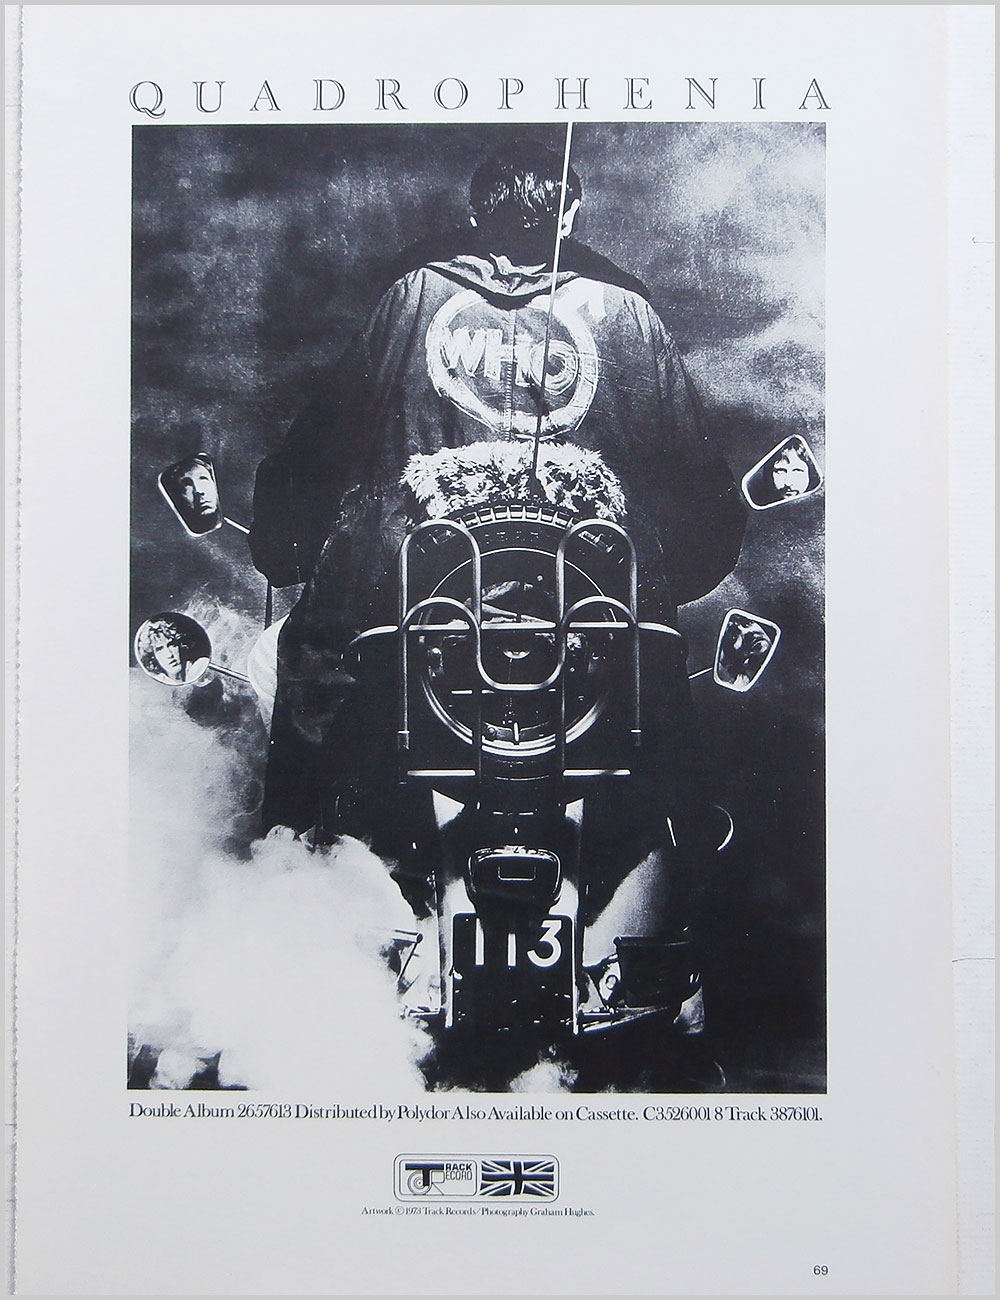 Bob Dylan and The Who - Rock Poster: Bob Dylan b/w The Who: Quadrophenia (PB100304)